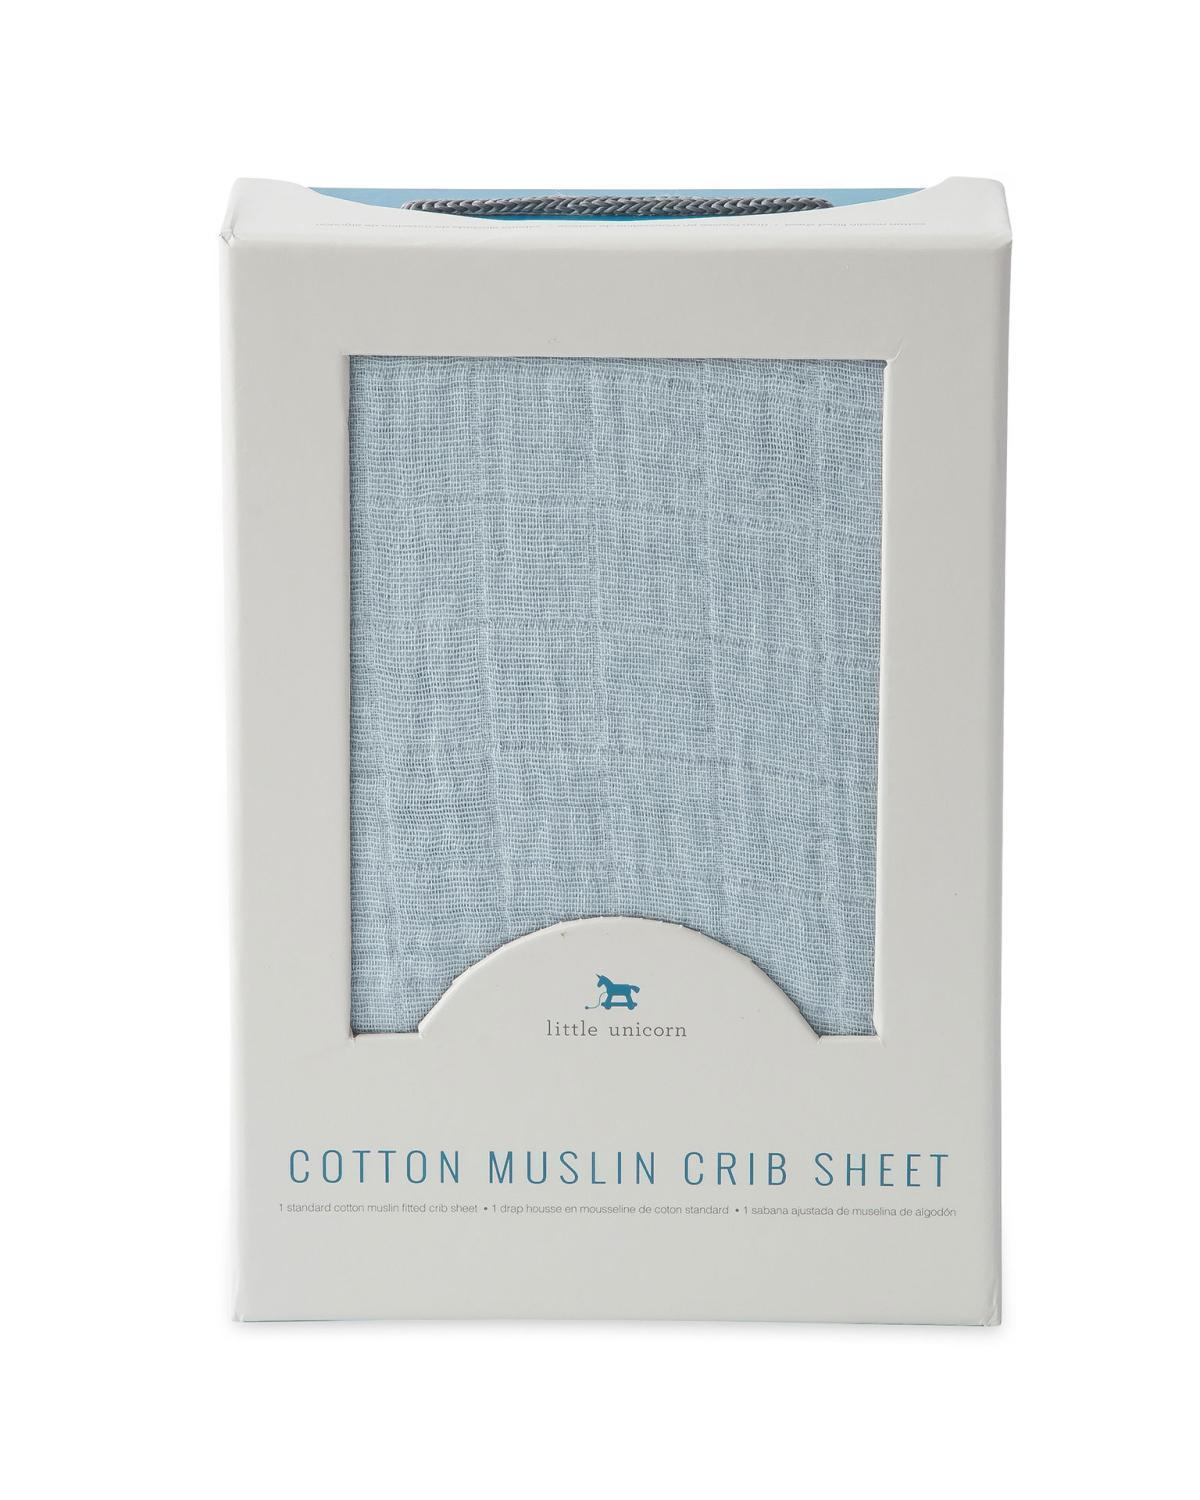 Little little unicorn room cotton muslin crib sheet in cloud blue